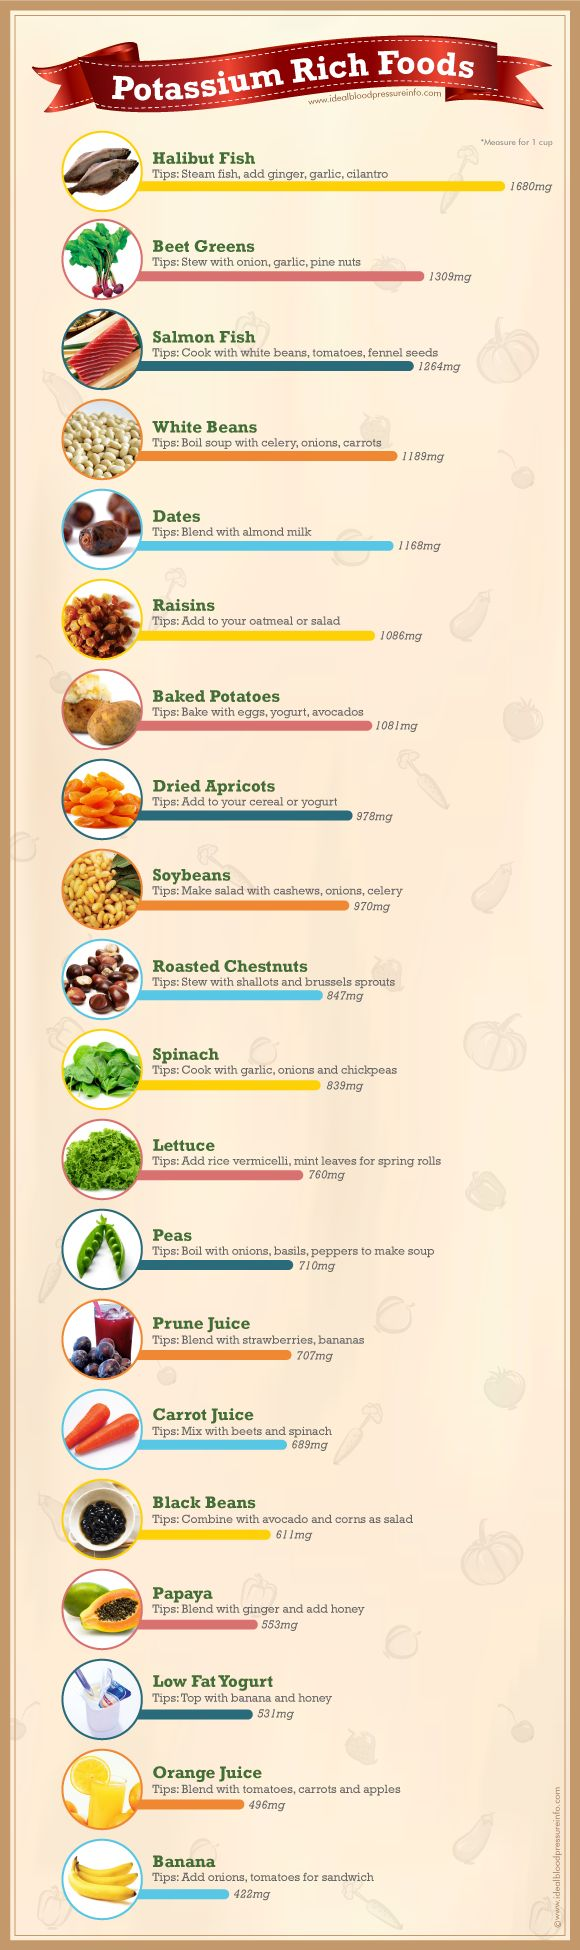 Sometimes I struggle to get enough Potassium into my diet. What Foods Have Potassium? [infographics] #Potassium